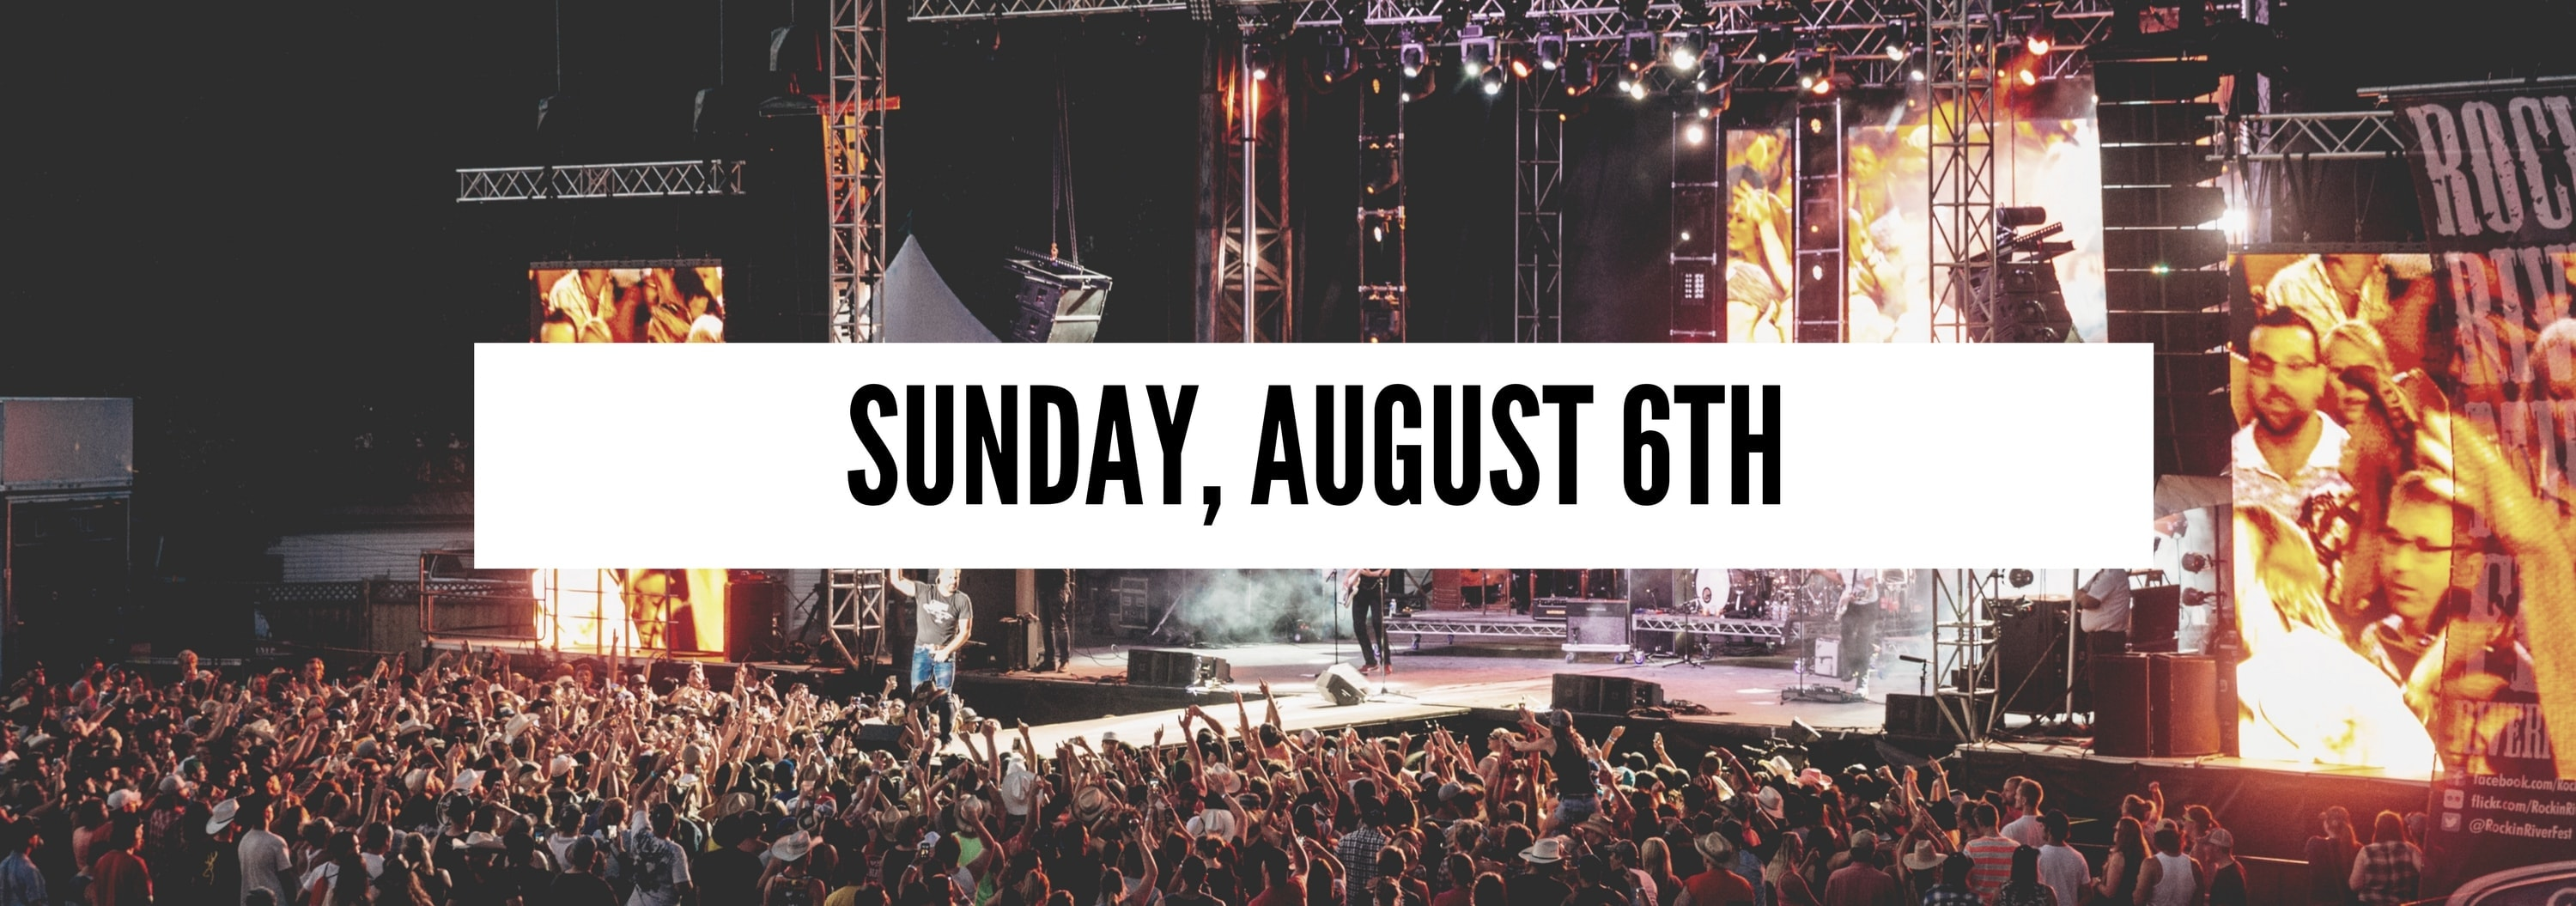 Sunday August 6th